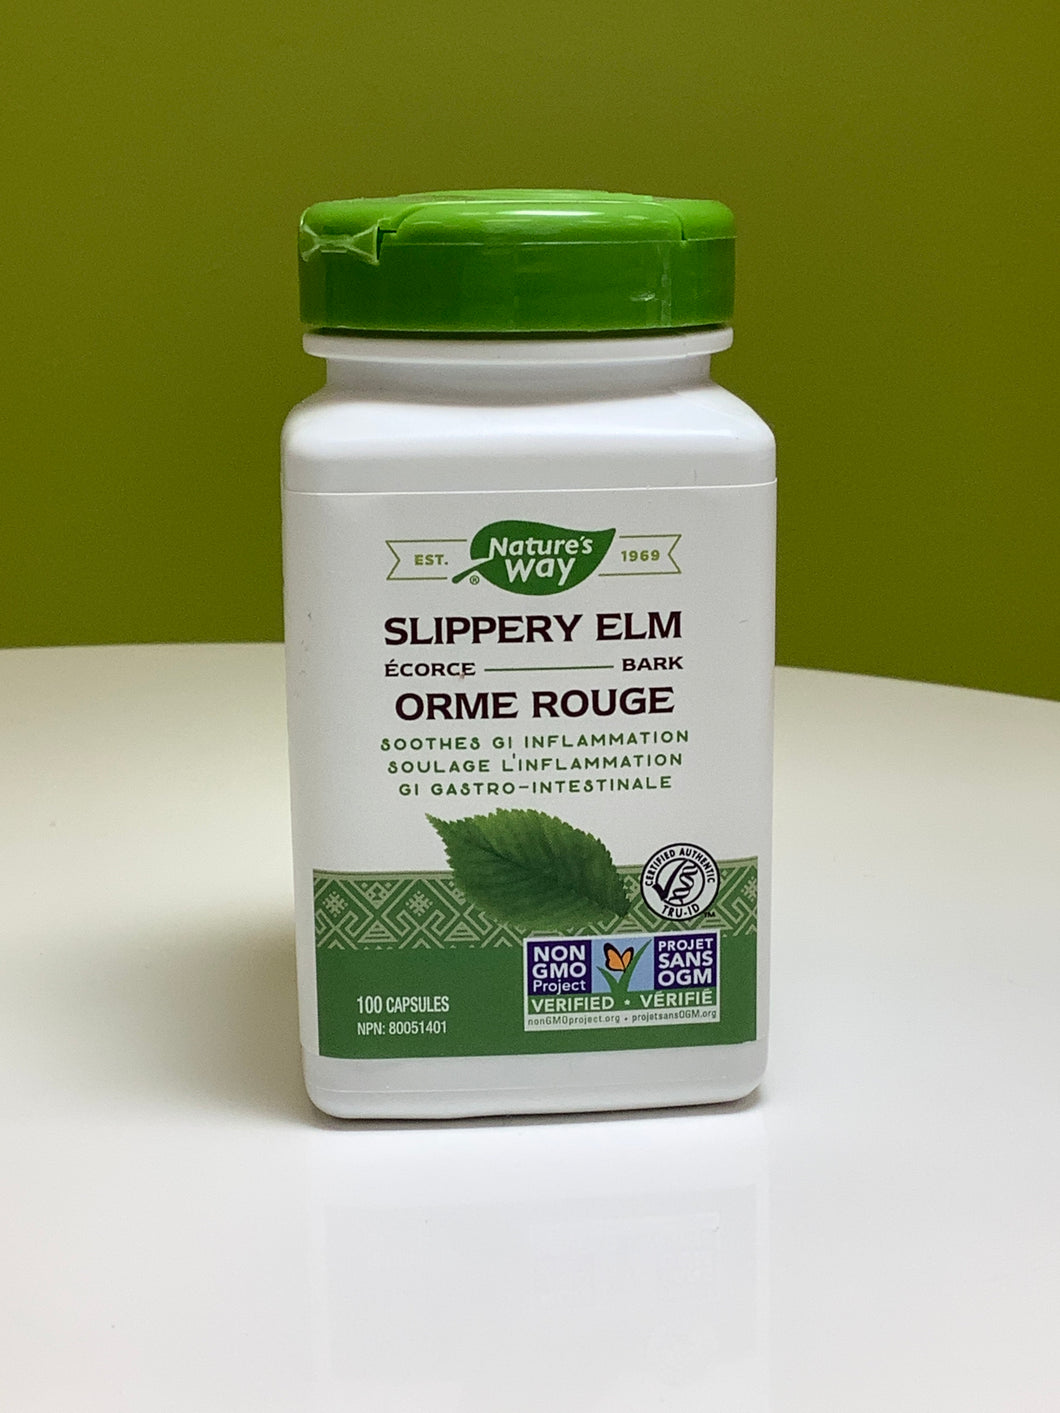 Nature's Way Slippery Elm